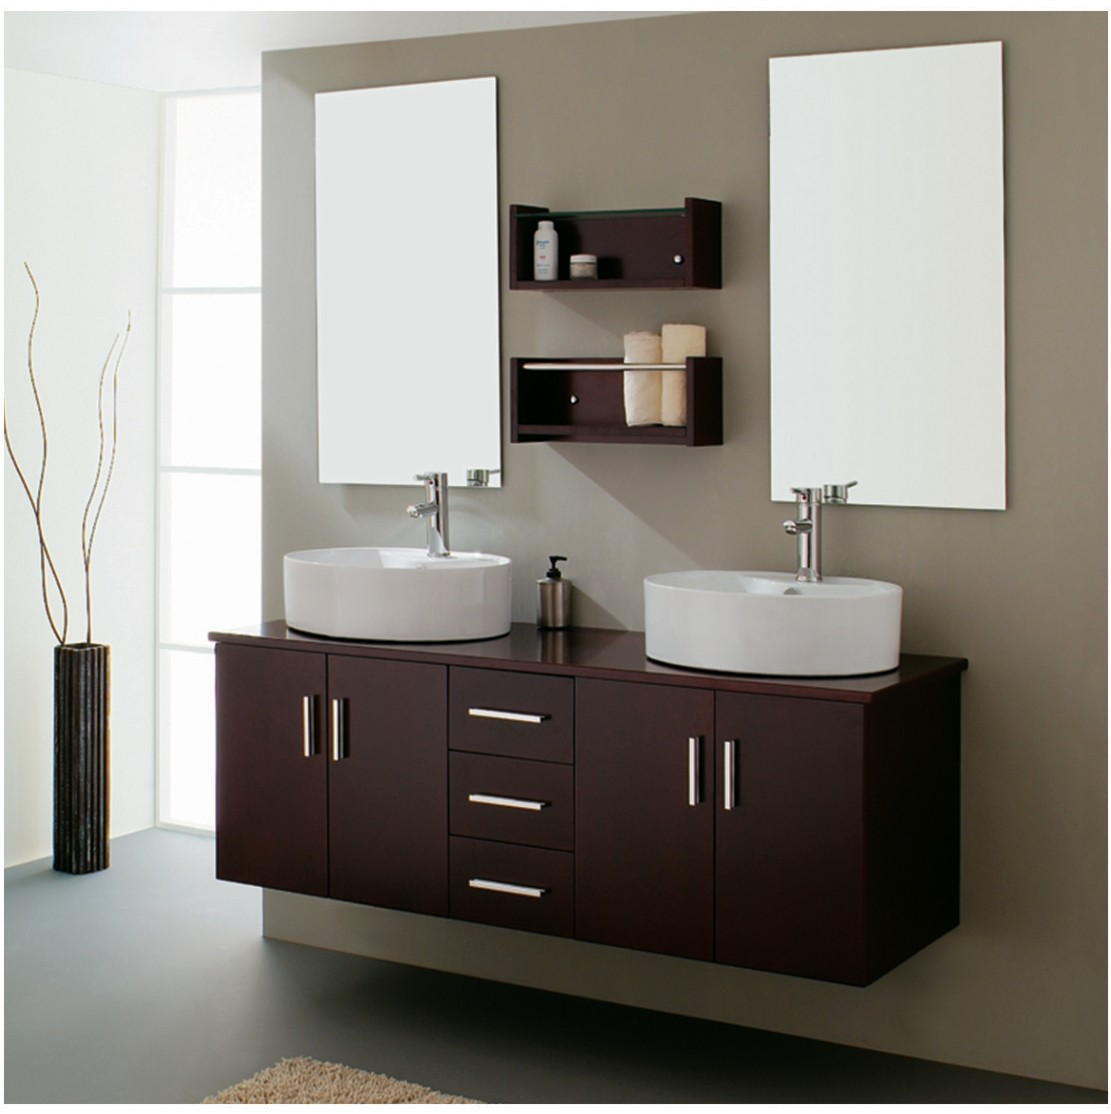 Small Bathroom Vanity With Sink Ideas Modern Vanity Units Small Bathrooms With Dual Sink Image